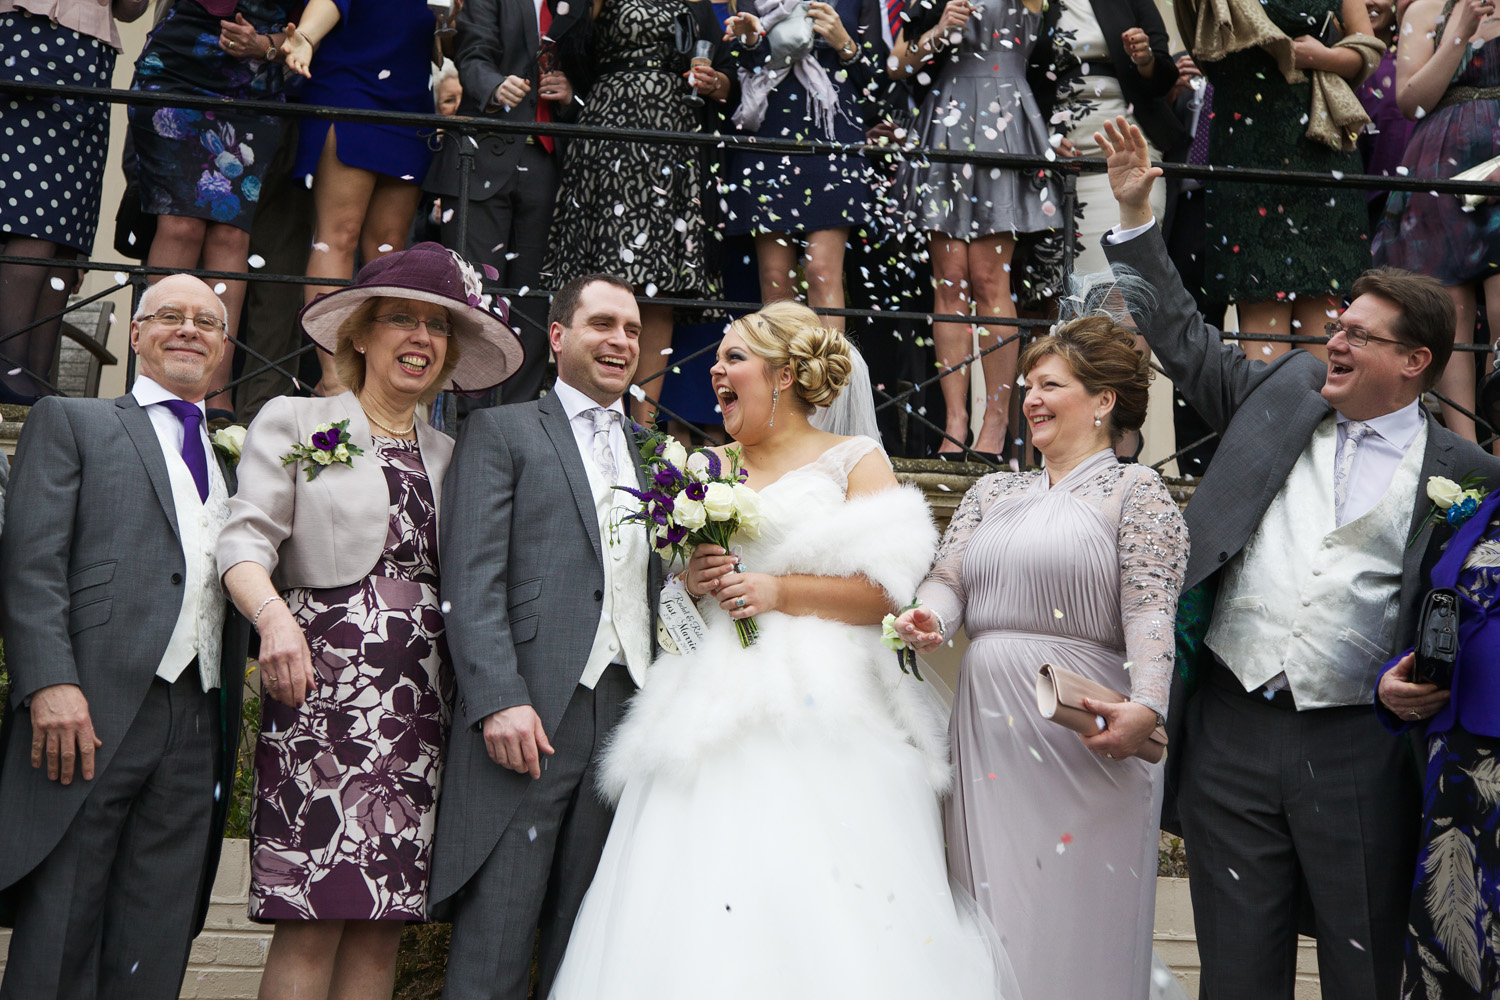 Taplow_House_Hotel_Wedding_Photographer_Maidenhead_046.jpg